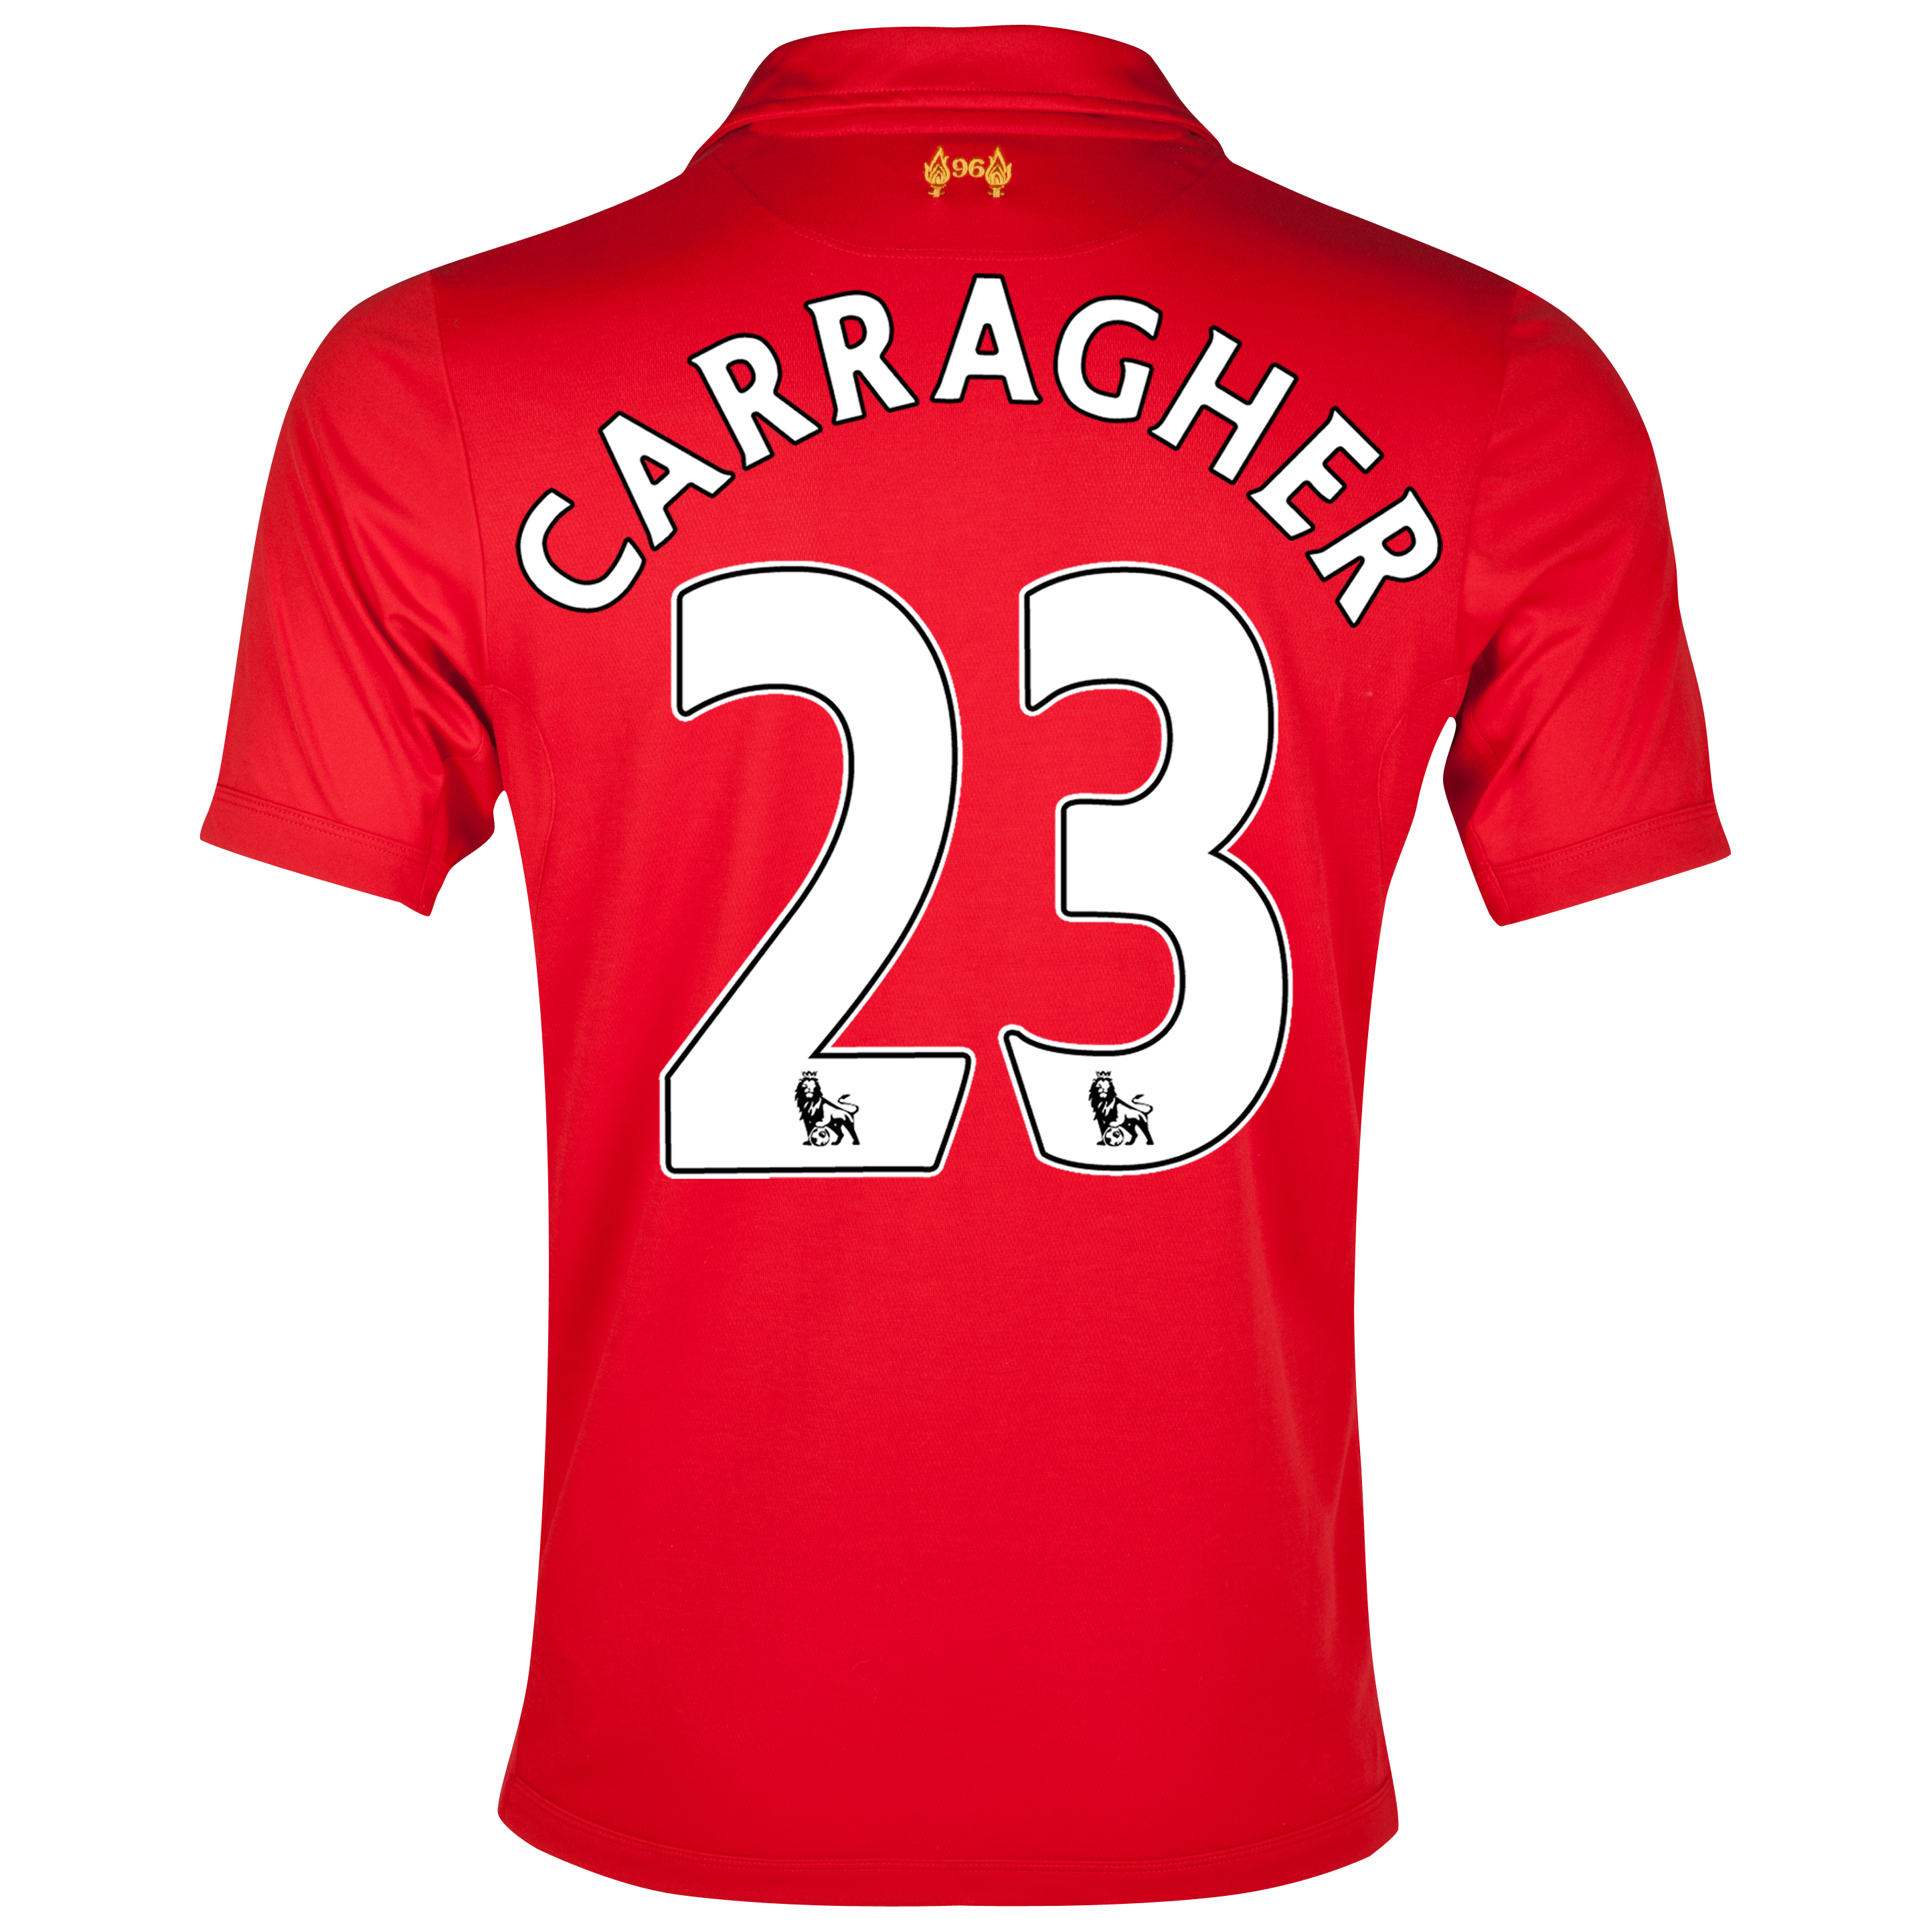 Liverpool Home Shirt 2012/13 - Youths with Carragher 23 printing